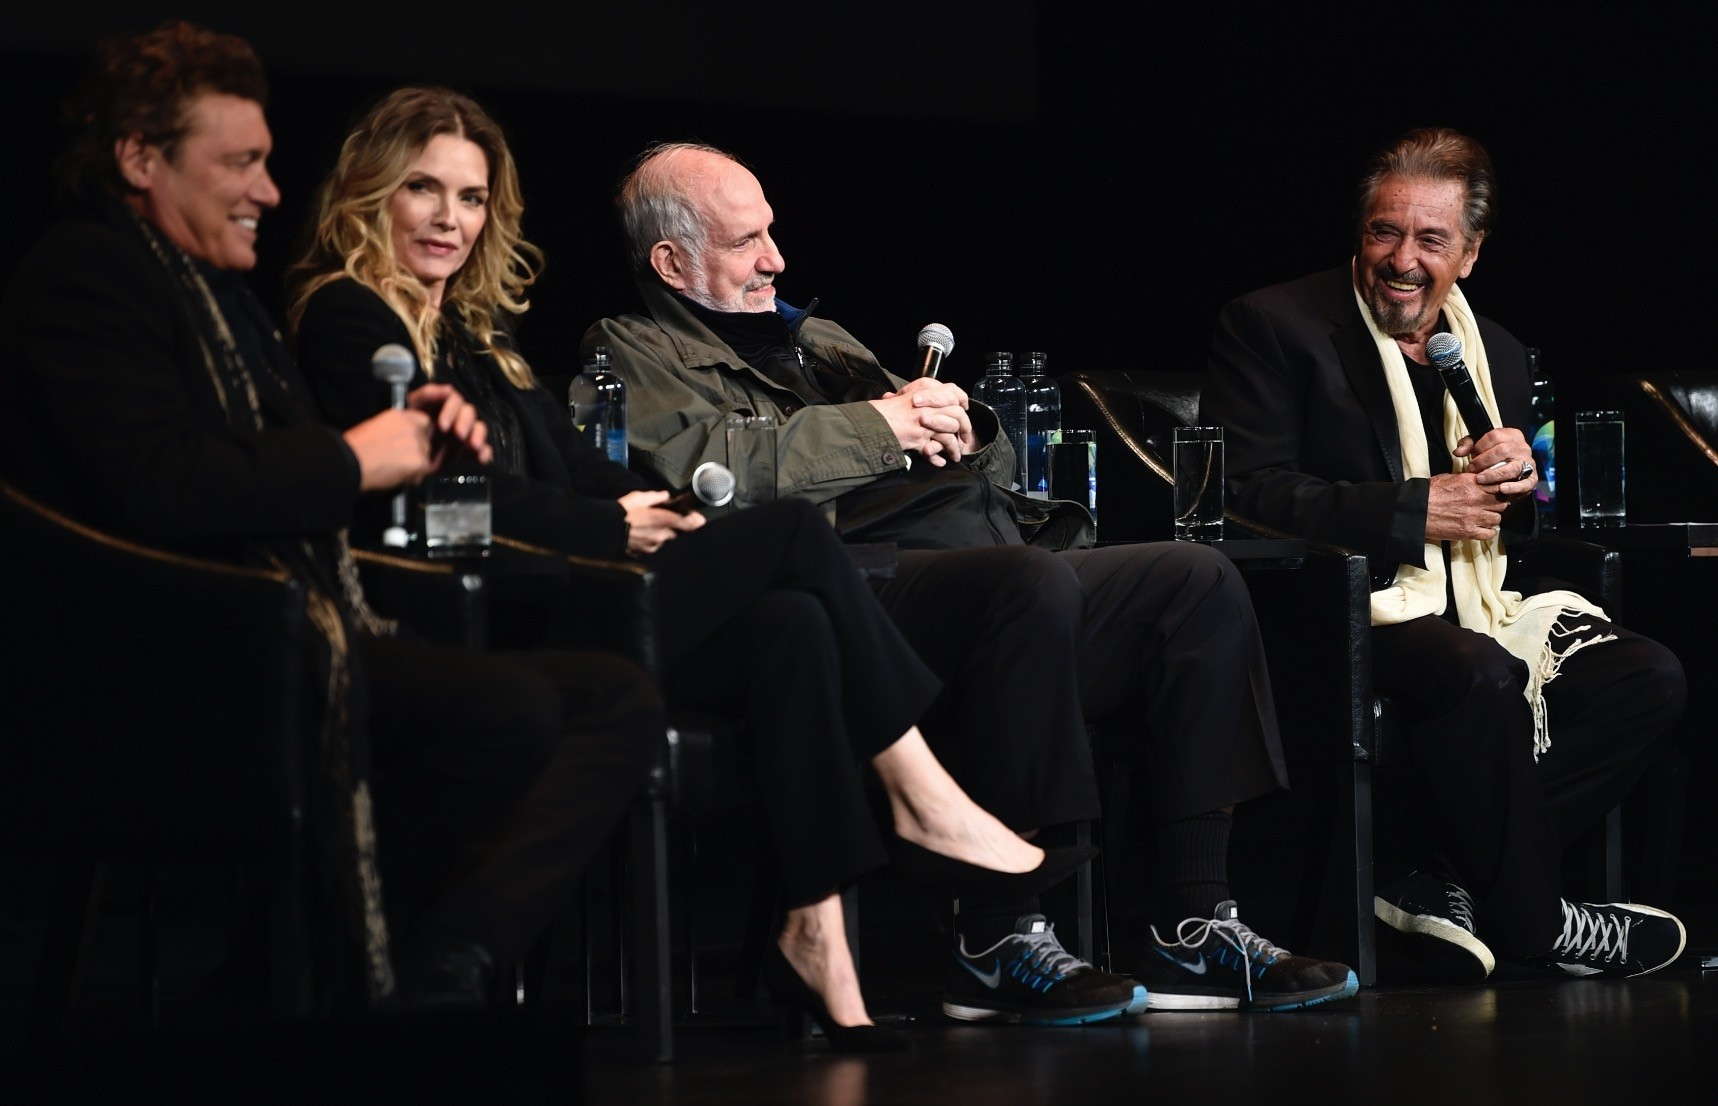 From left to right, actress Michelle Pfeiffer, director Brian De Palma and actor Al Pacino attend a 35th an- niversary screening u201cScarfaceu201d at the Beacon Theatre during 2018 Tribeca Film Festival.